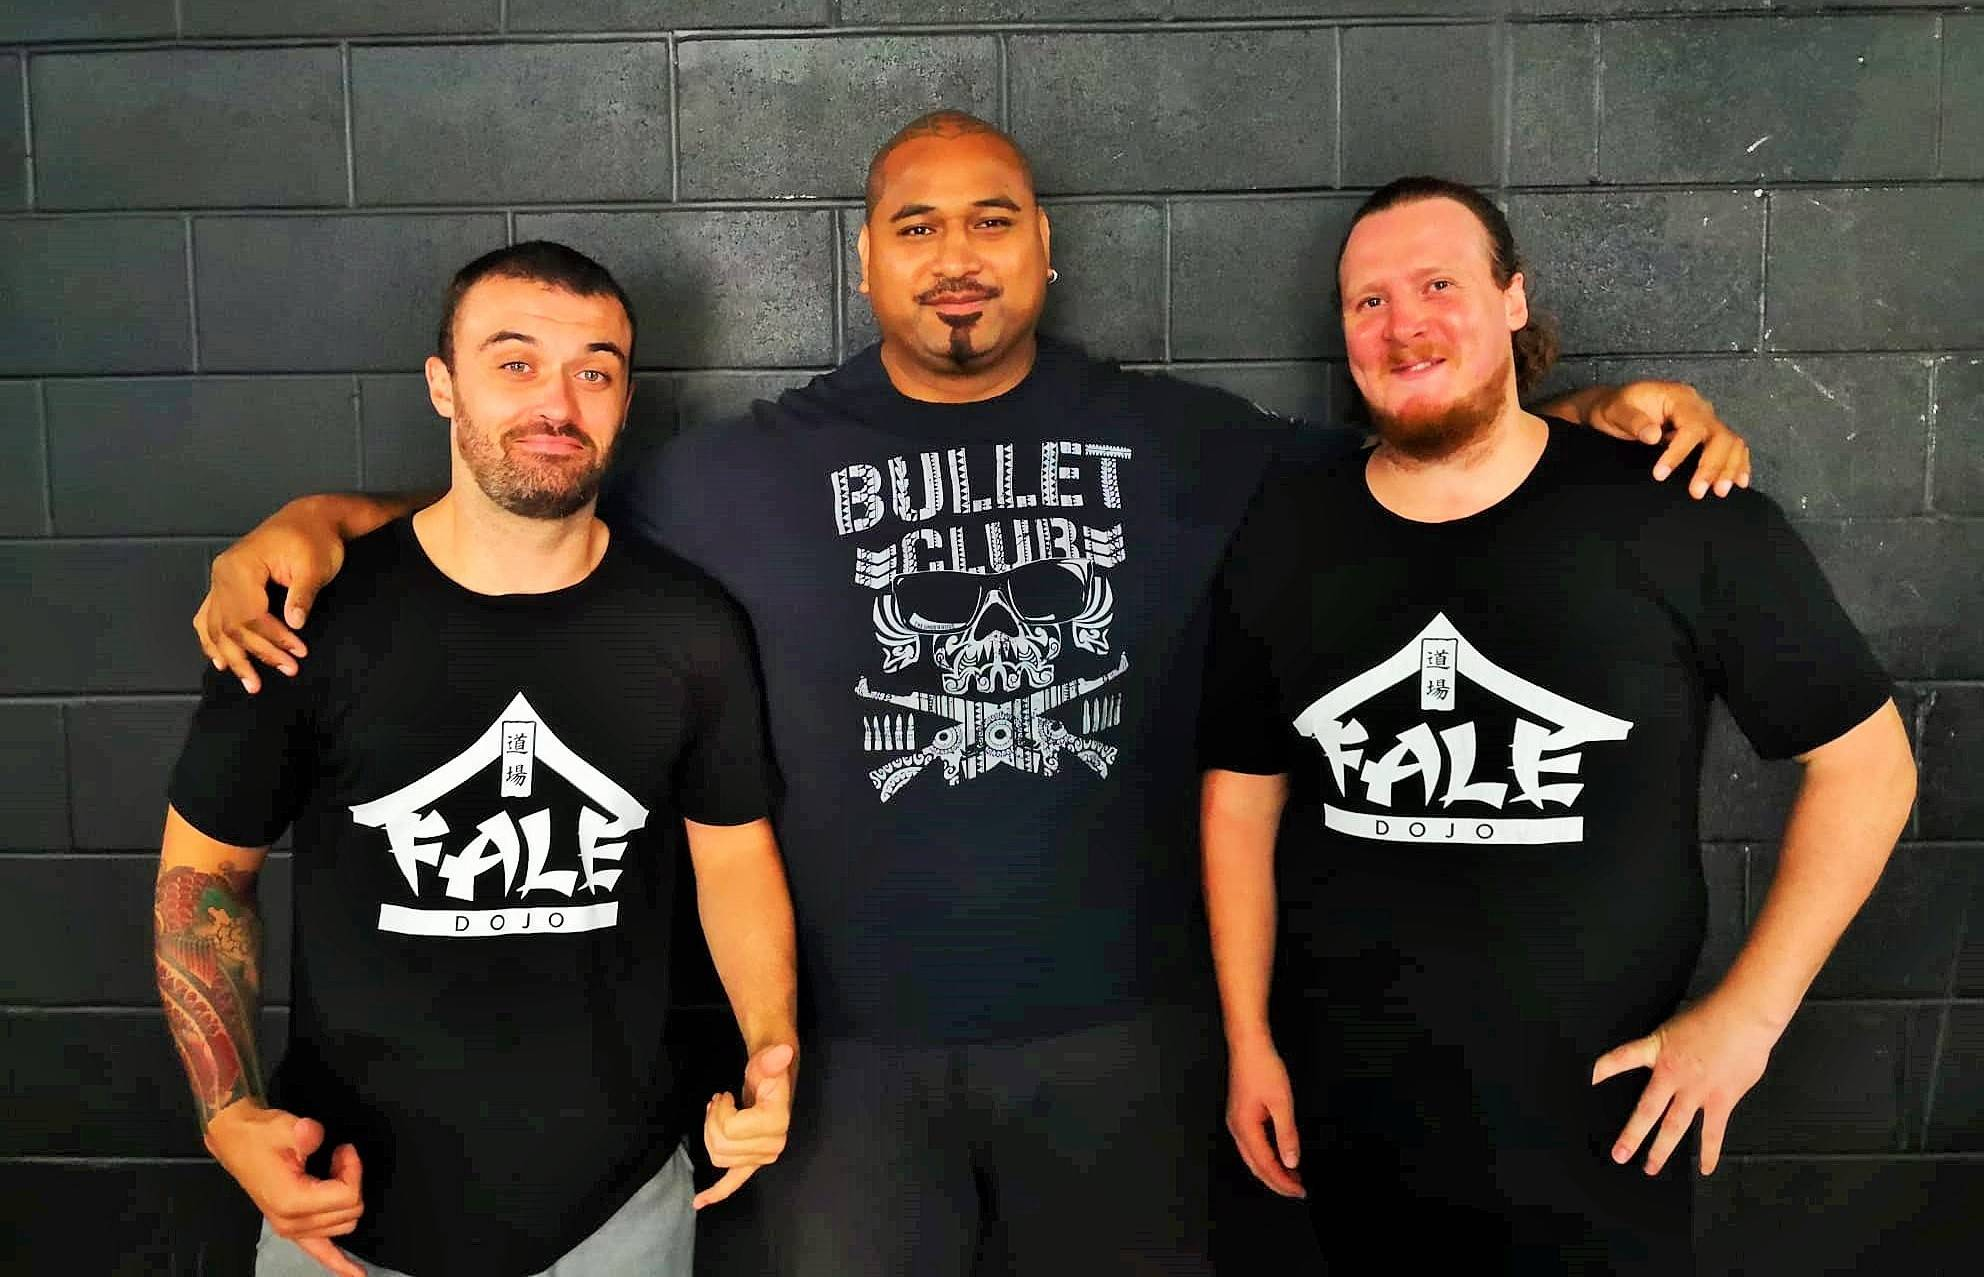 Fale Dojo Young Lions Liam Fury and Patrick Schischka join NJPW Dojo